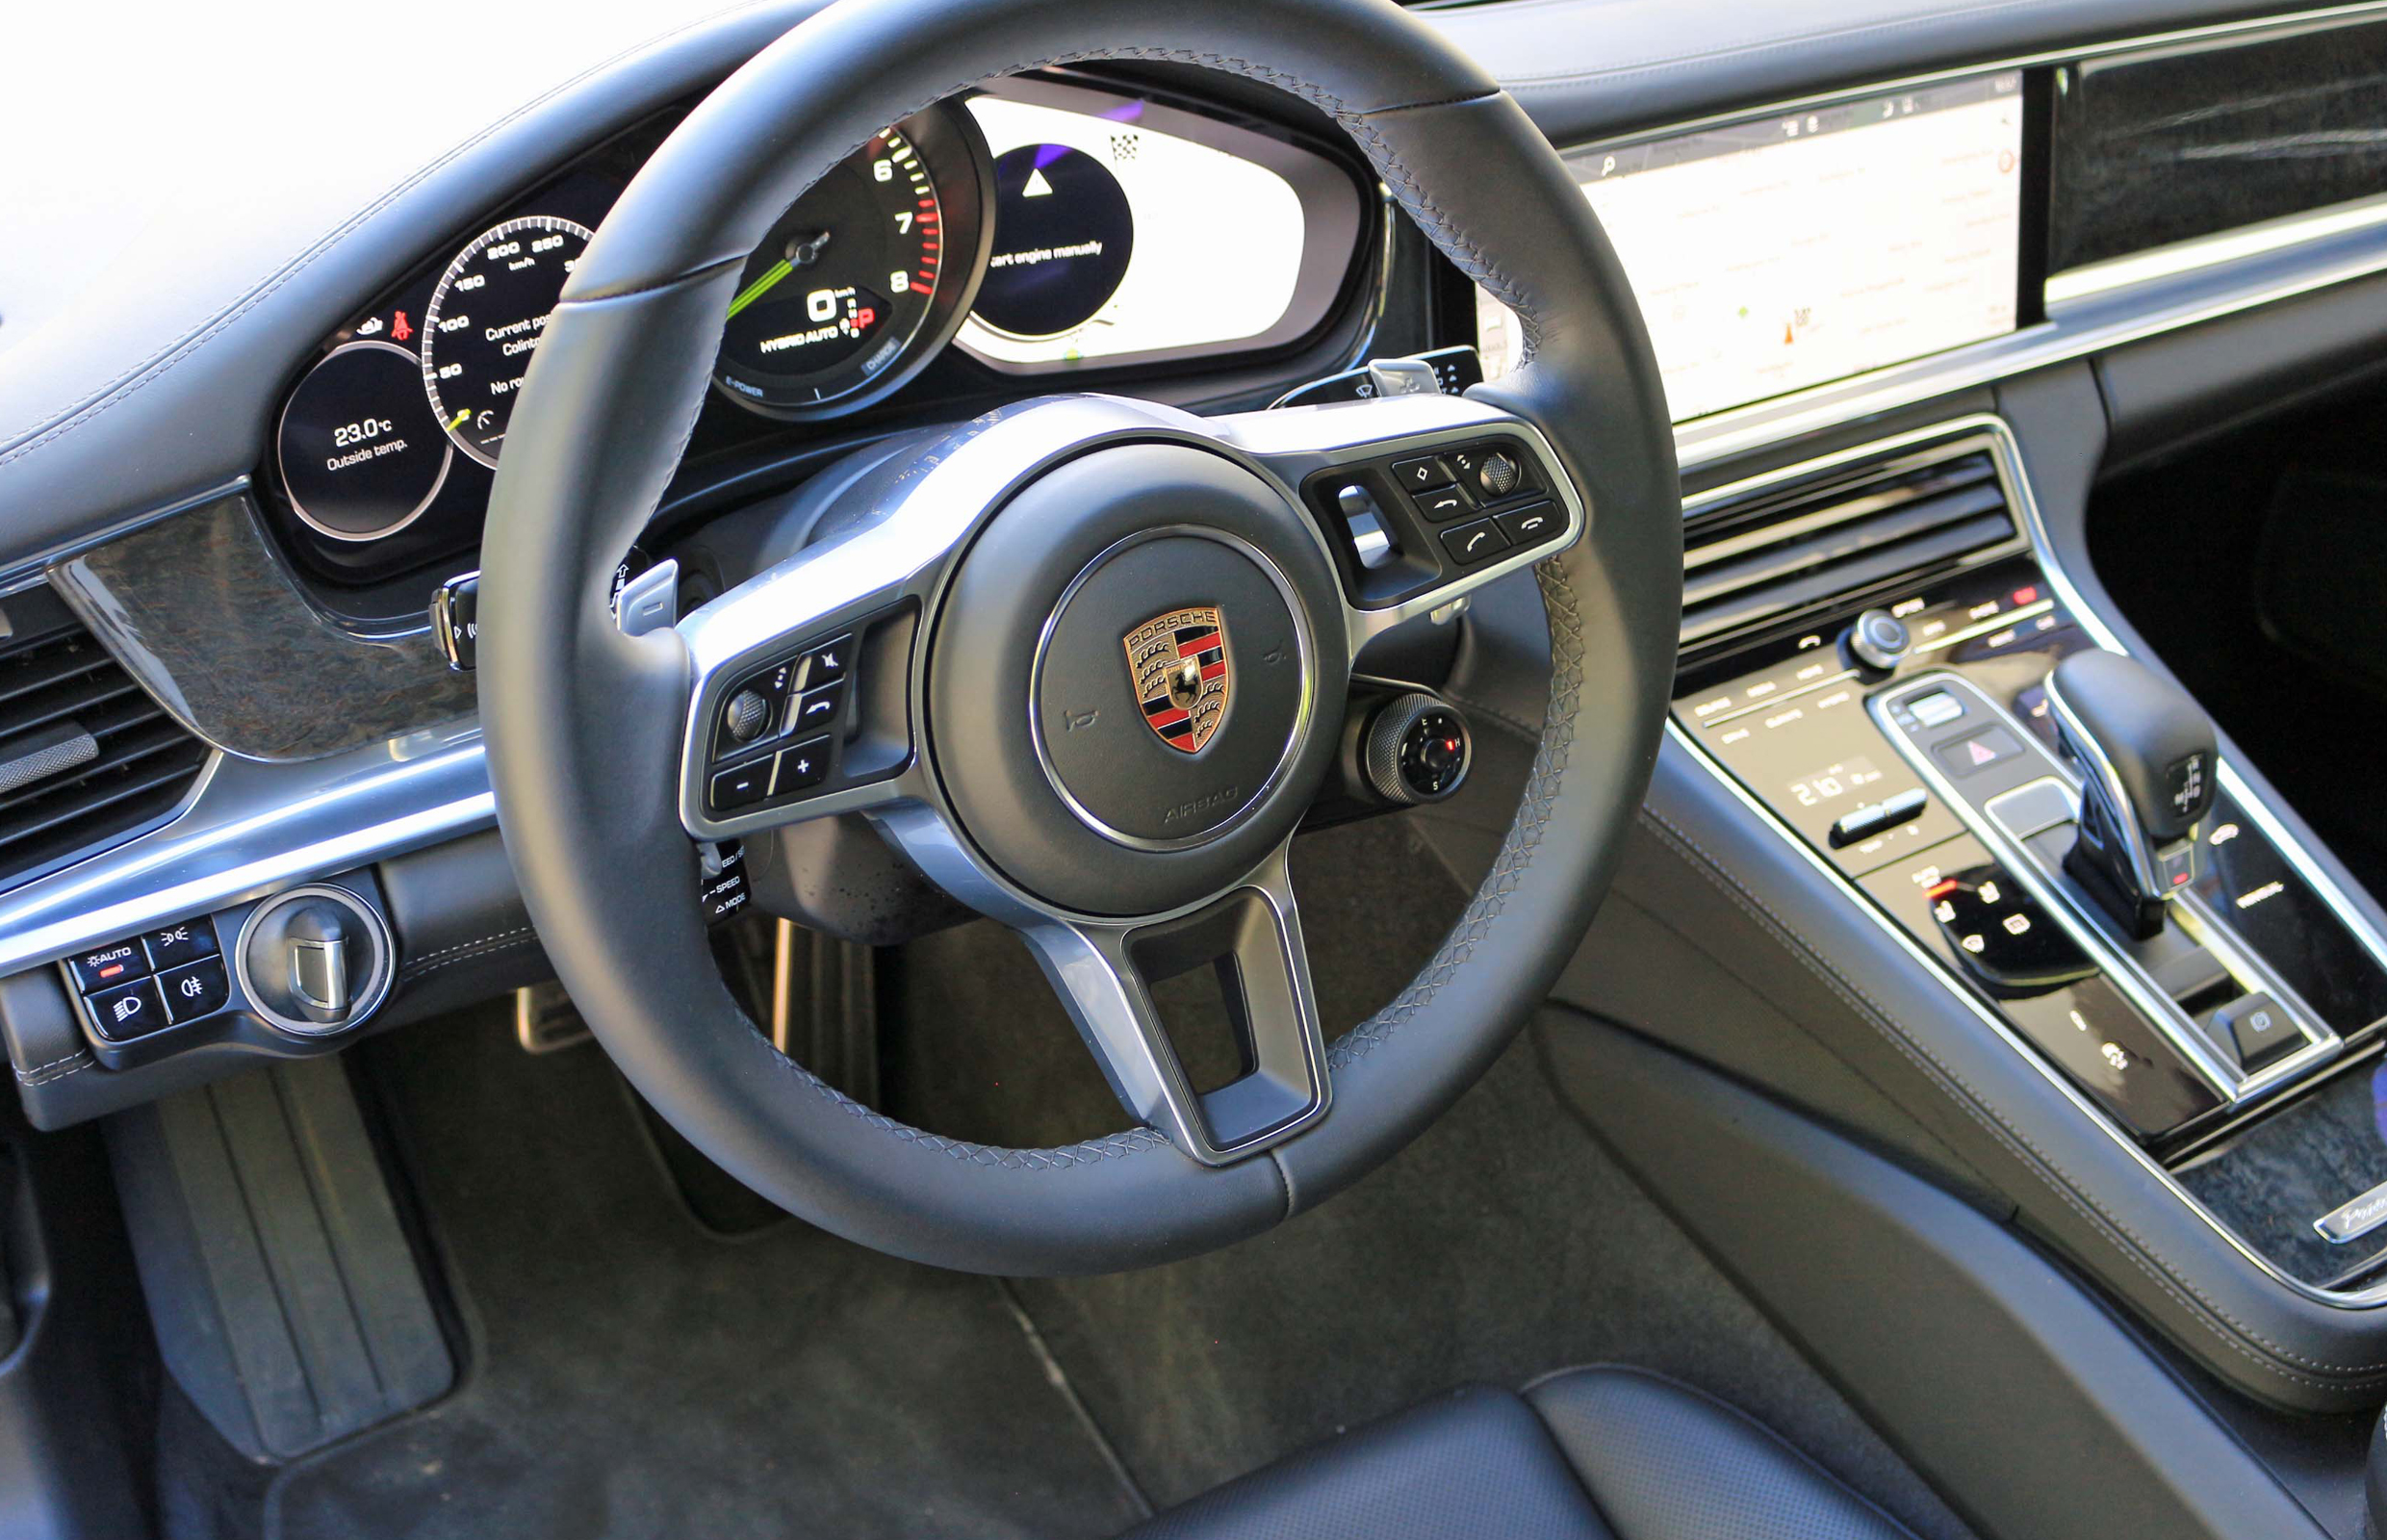 2018 Porsche Panamera 4 E Hybrid Interior Cockpit And Dash (Photo 9 of 10)